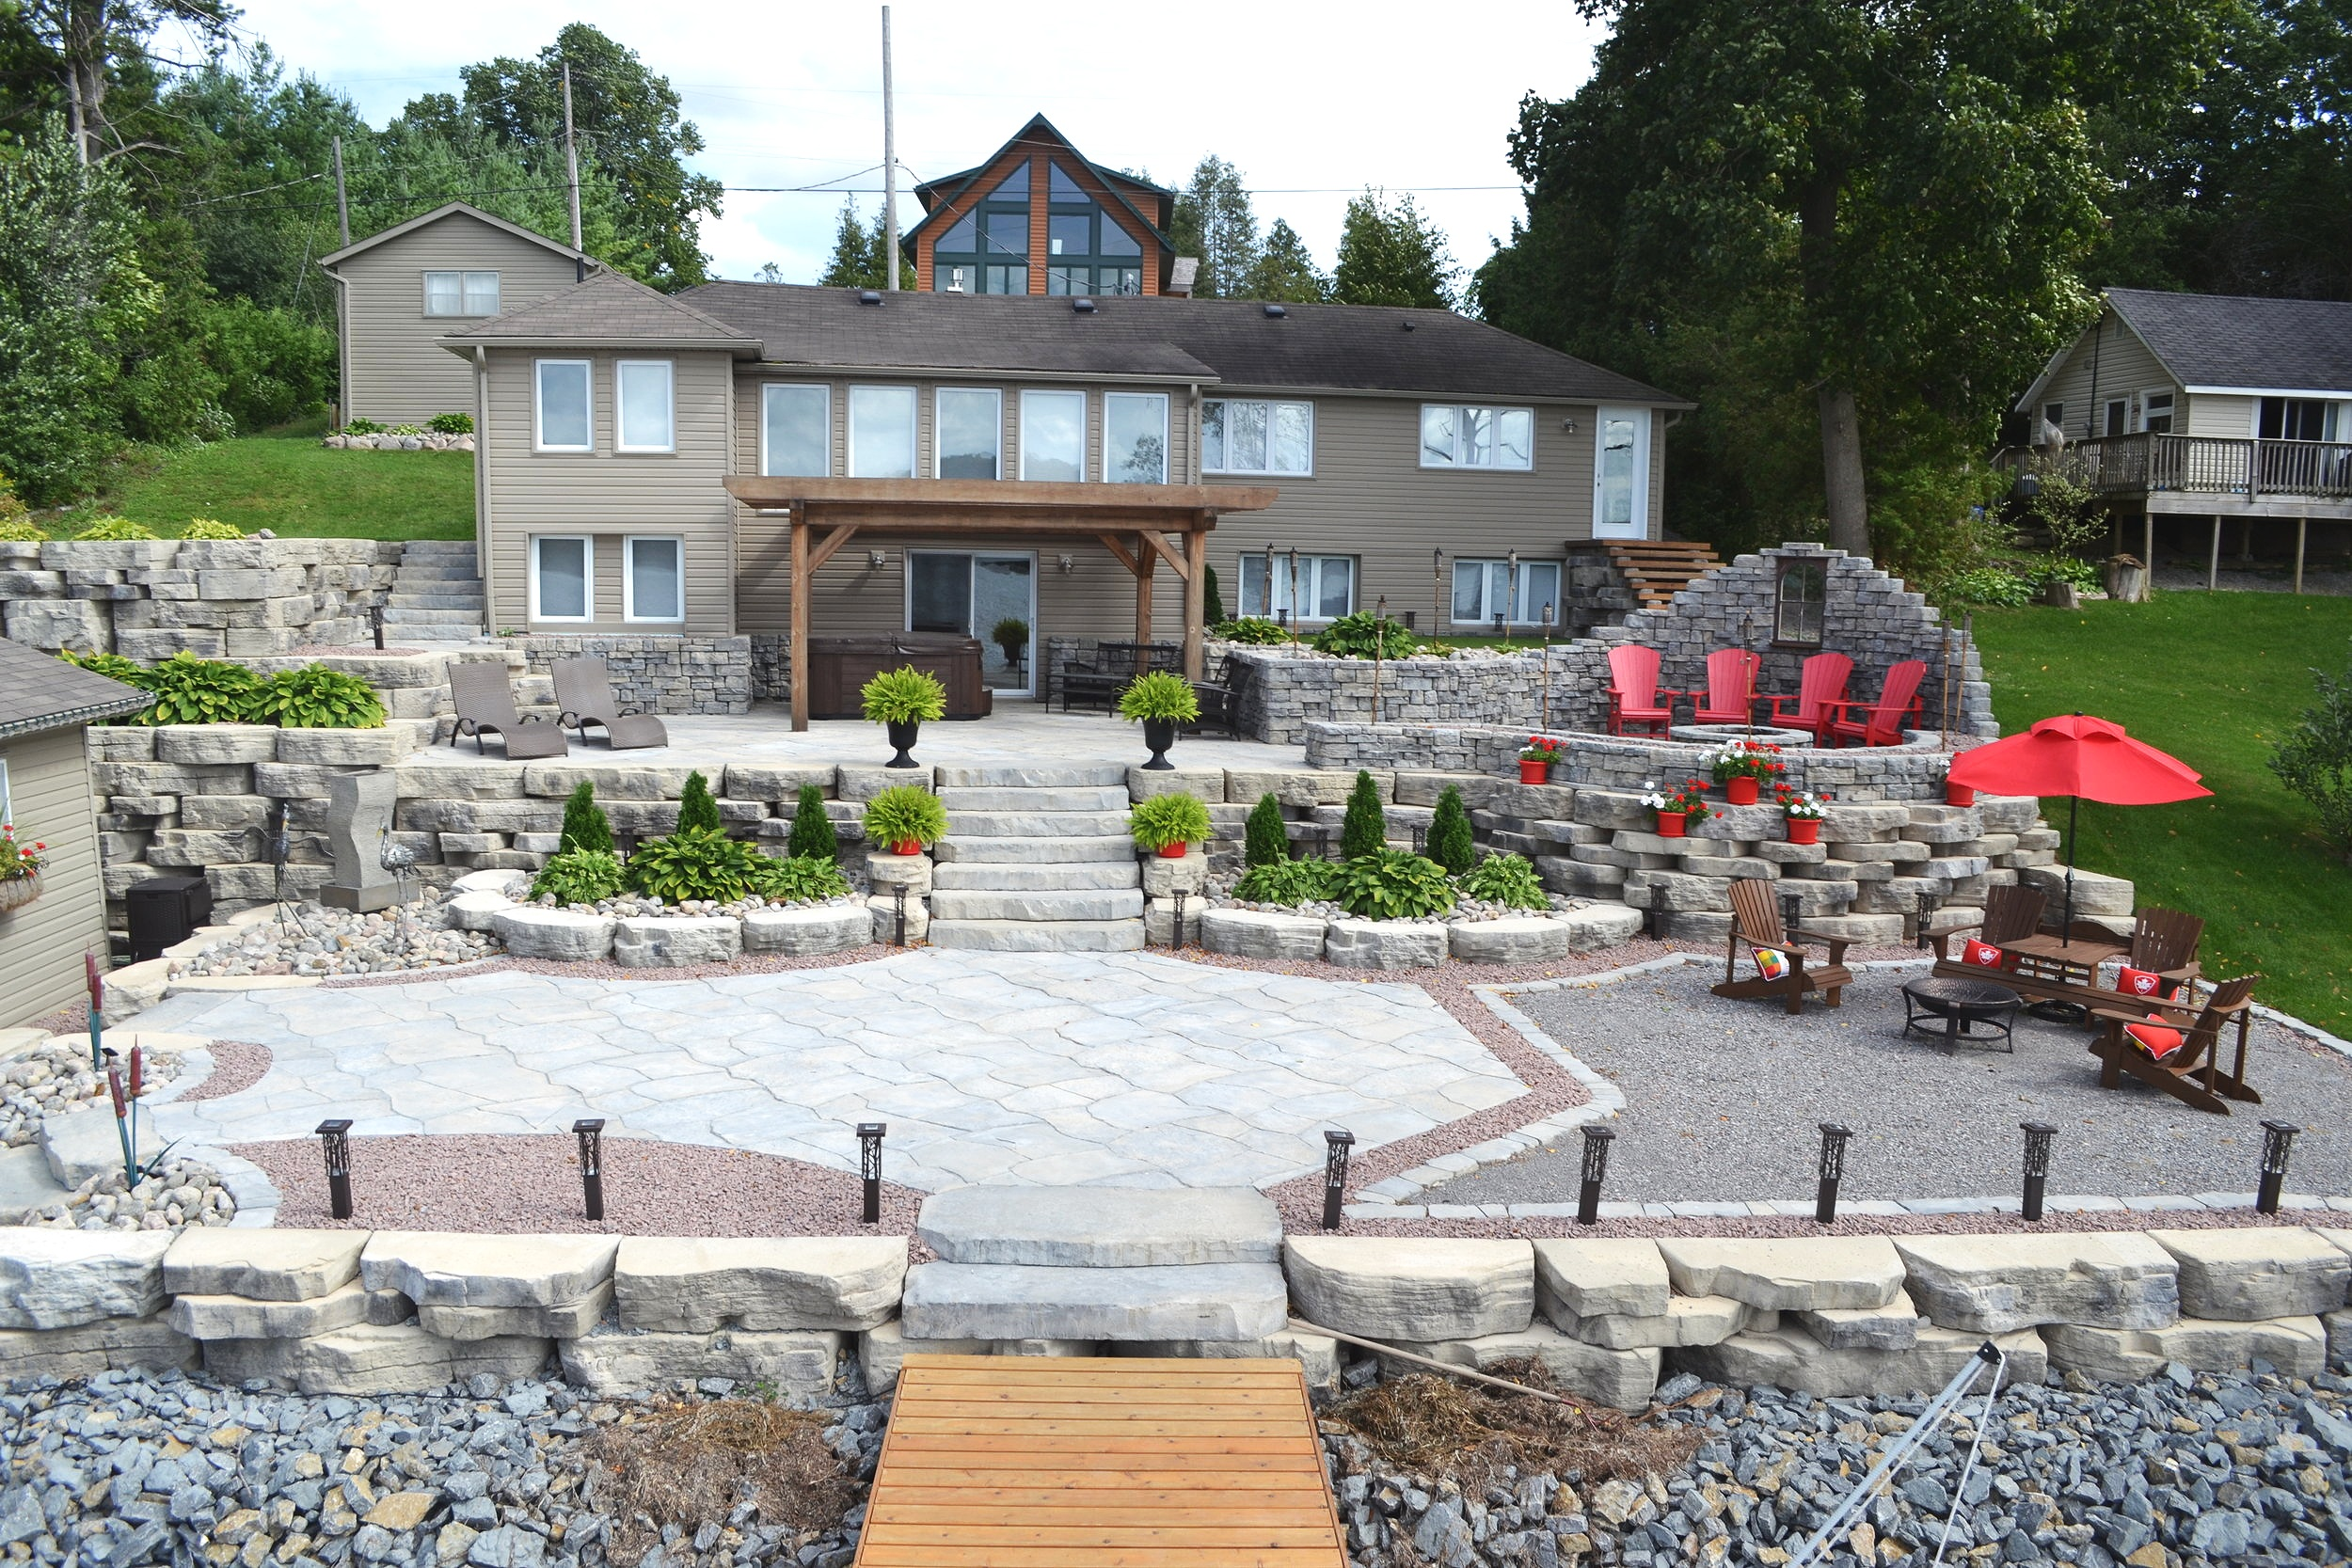 london-ontario-best-landscaper-design-landscaping-patio-driveway-deck-hunter-home-garden-09.JPG